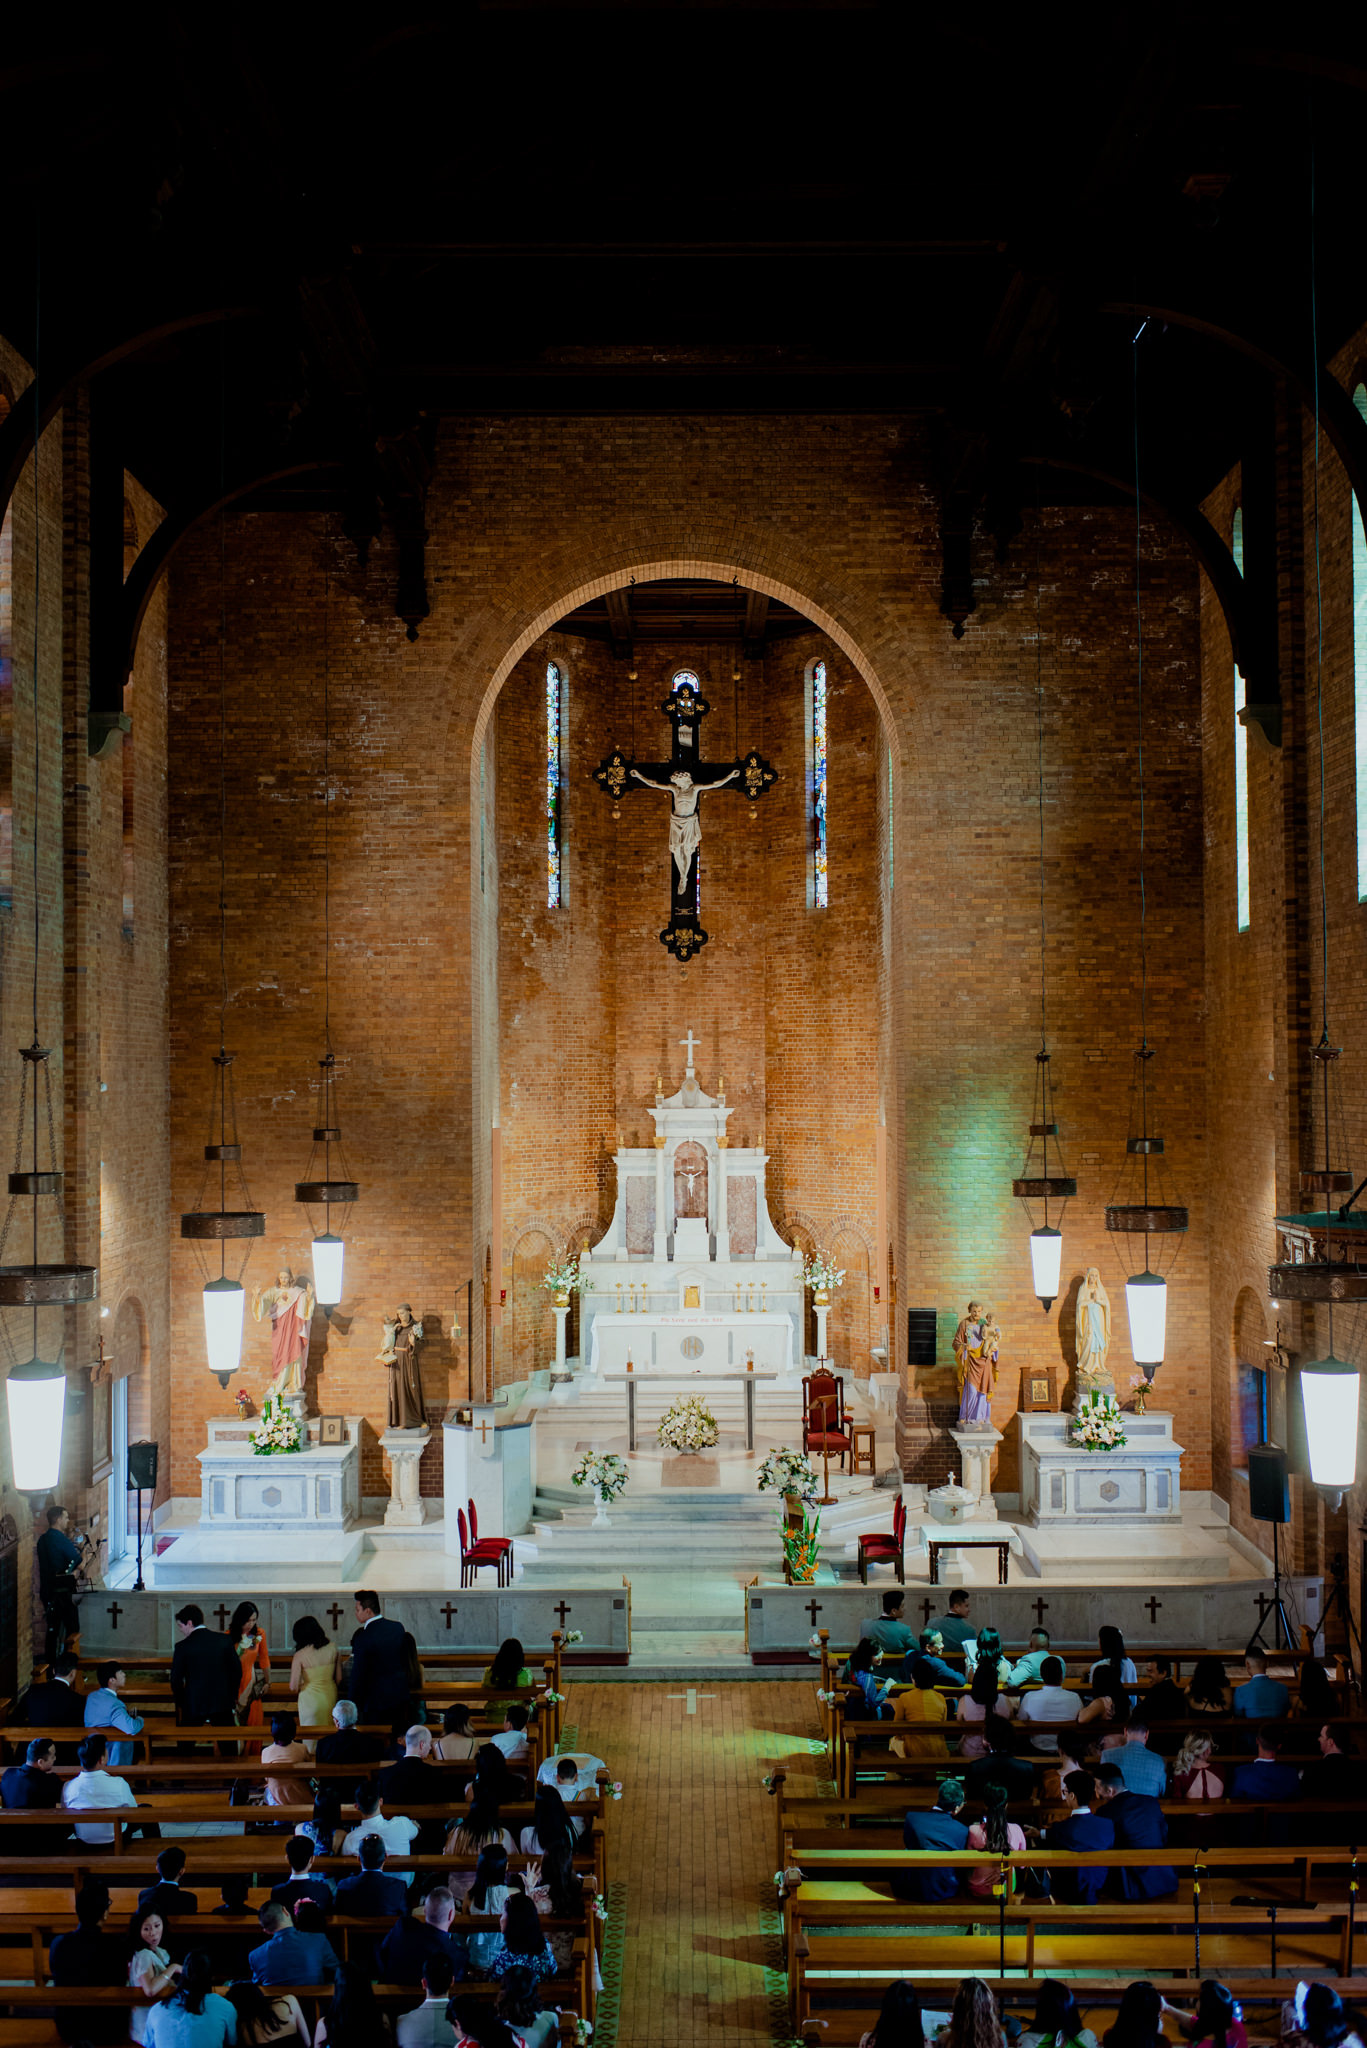 The interior of a tall and large brick Catholic church filled with wedding guests